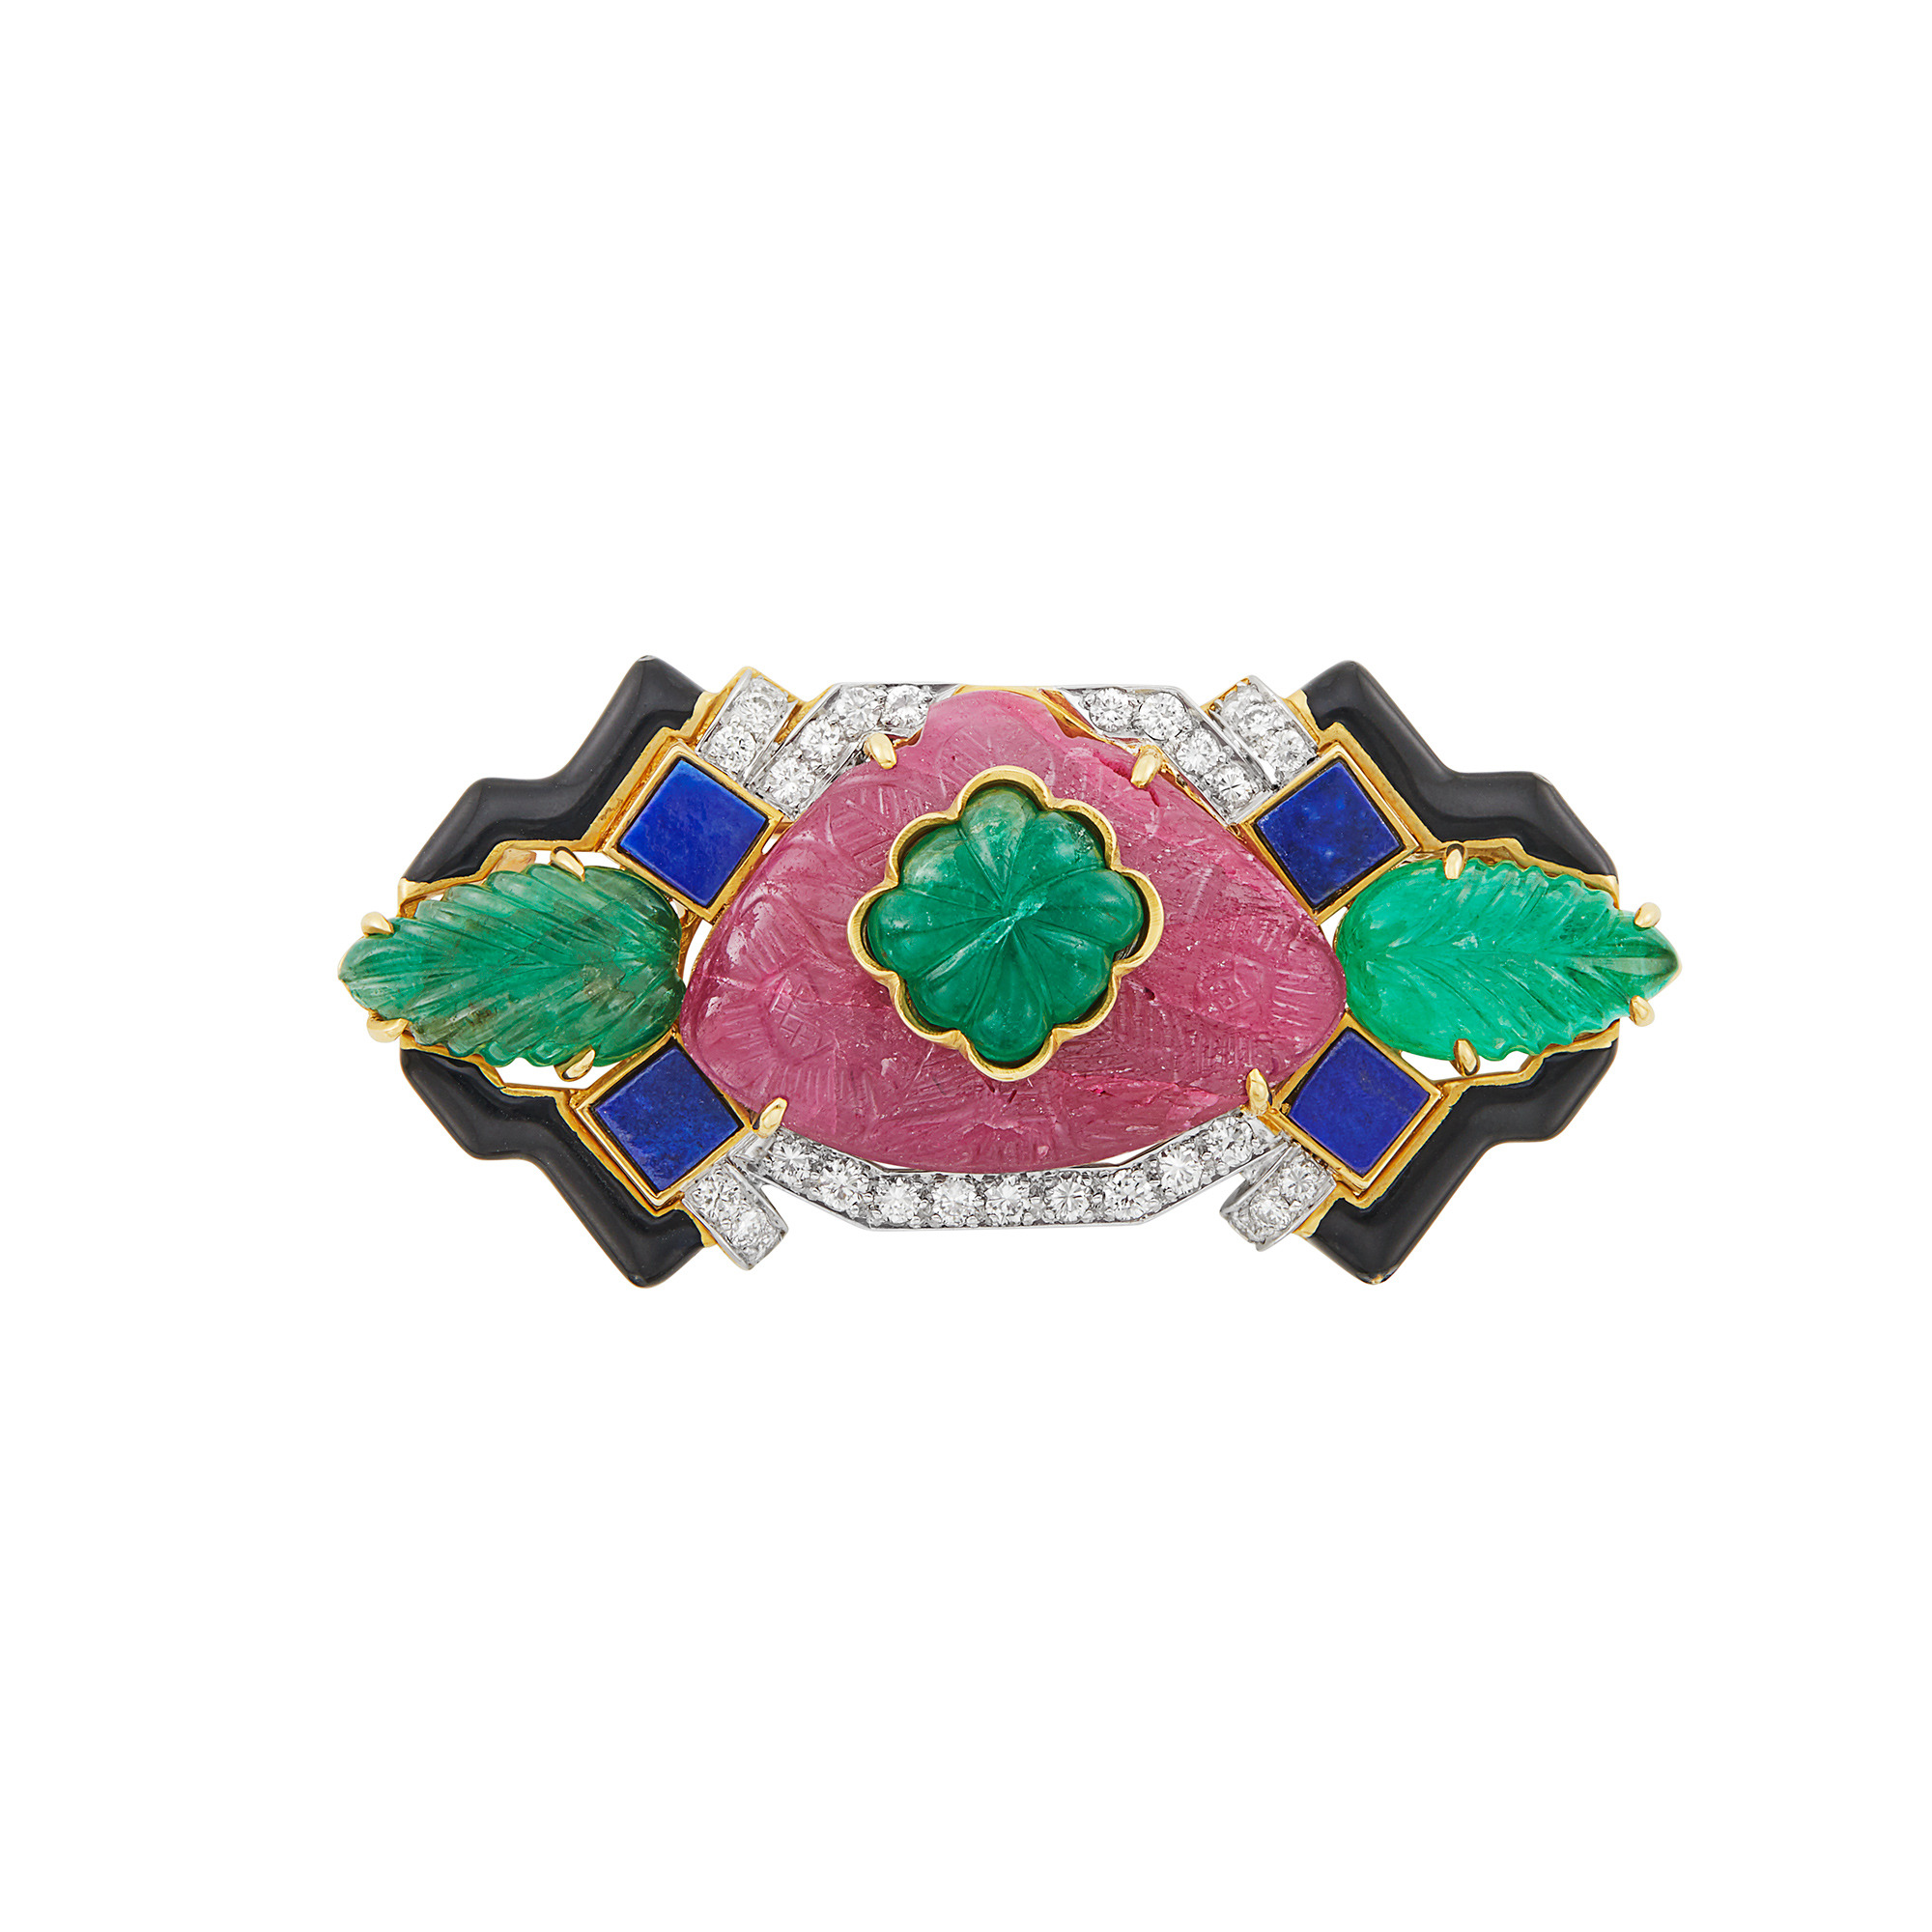 Lot image - Gold, Platinum, Carved Ruby, Emerald, Lapis, Black Enamel and Diamond Brooch, David Webb